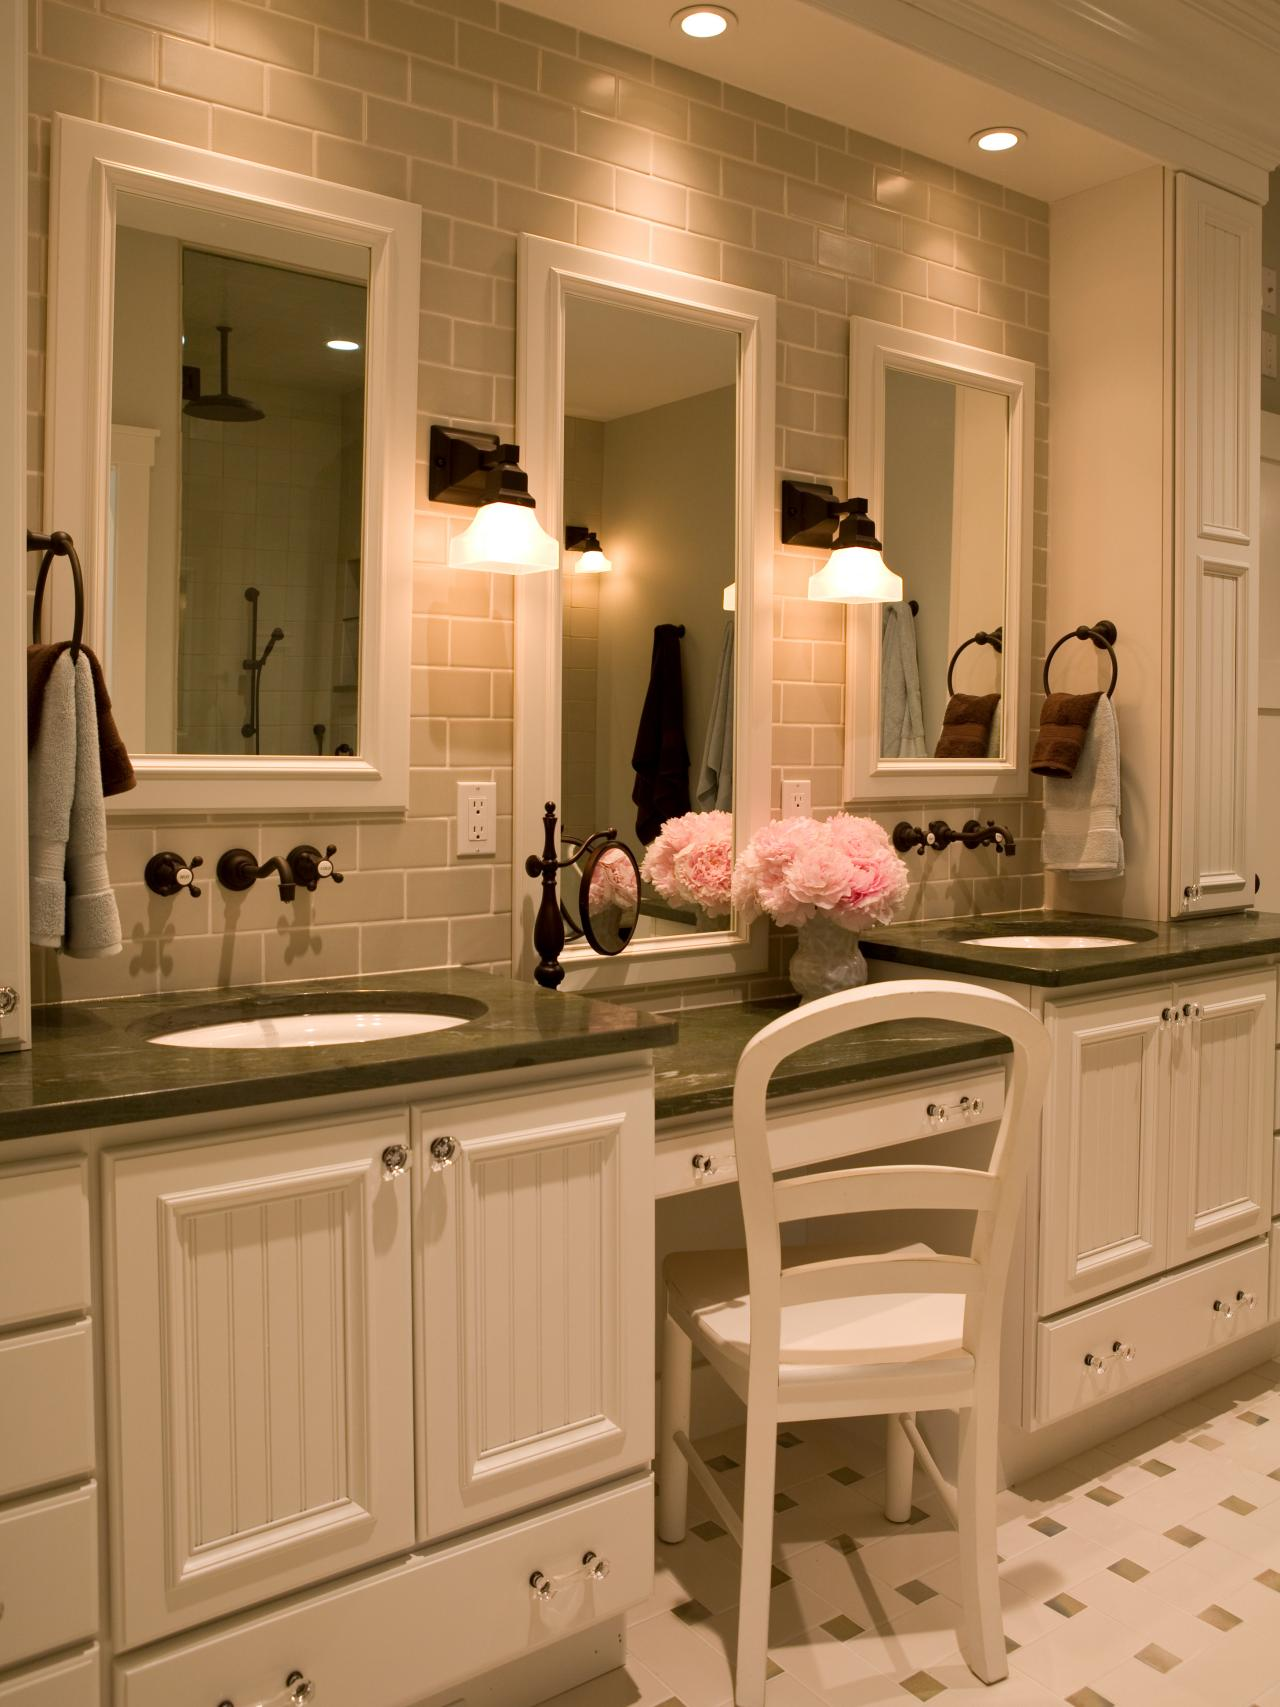 Makeup vanity dressing table bathroom ideas designs for Bathroom dressing ideas